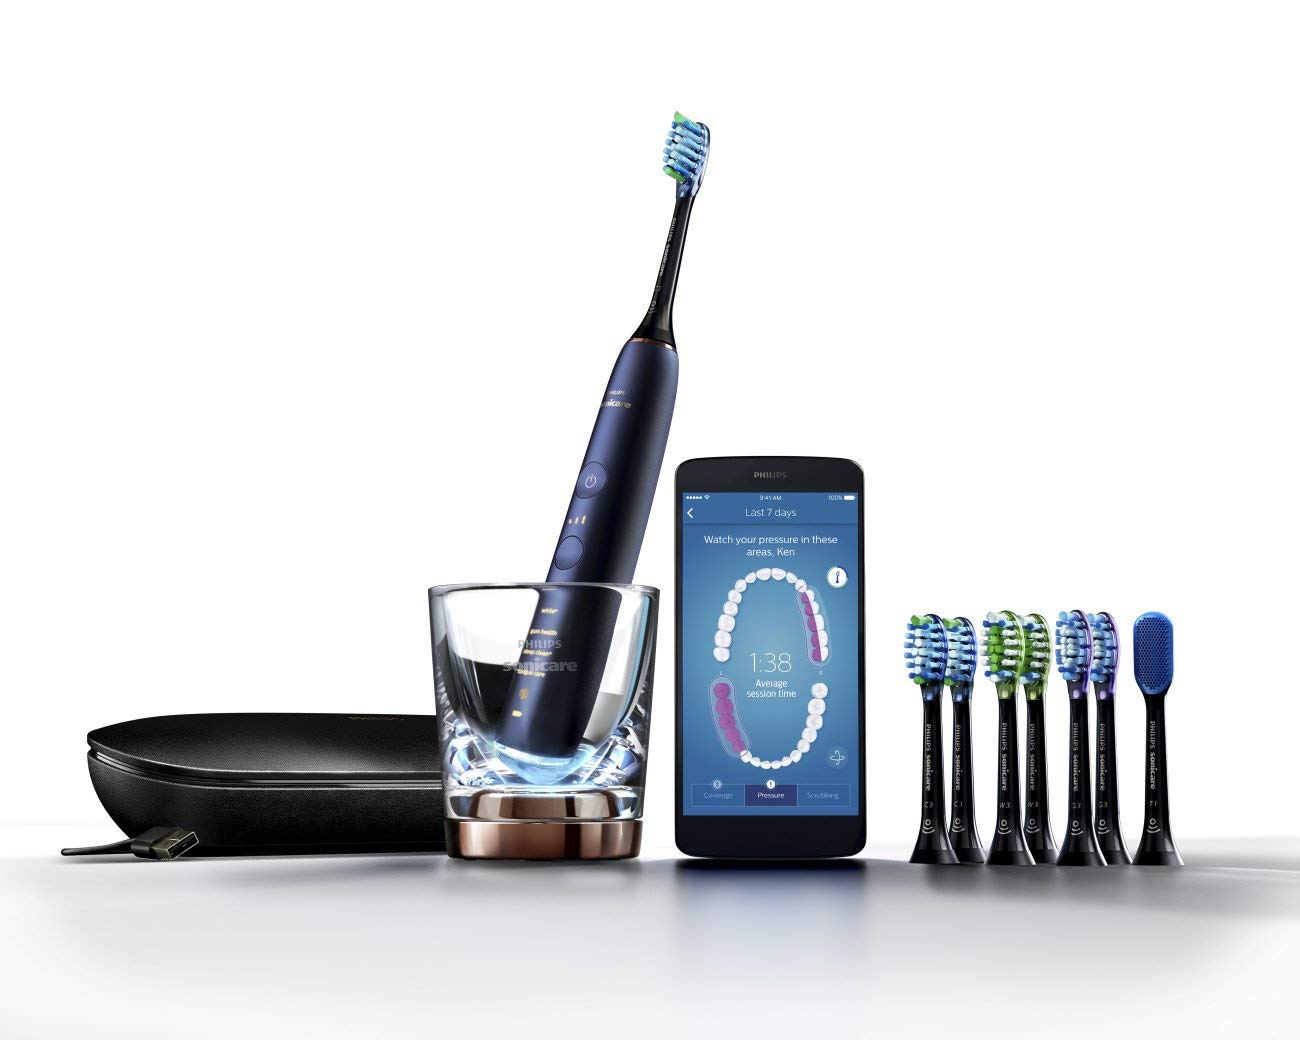 Philips Sonicare DiamondClean Smart Electric, Rechargeable toothbrush for Complete Oral Care, with Charging Travel Case, 5 modes, and 8 Brush Heads  - 9700 Series, Lunar Blue, HX9957/51 by Philips Sonicare